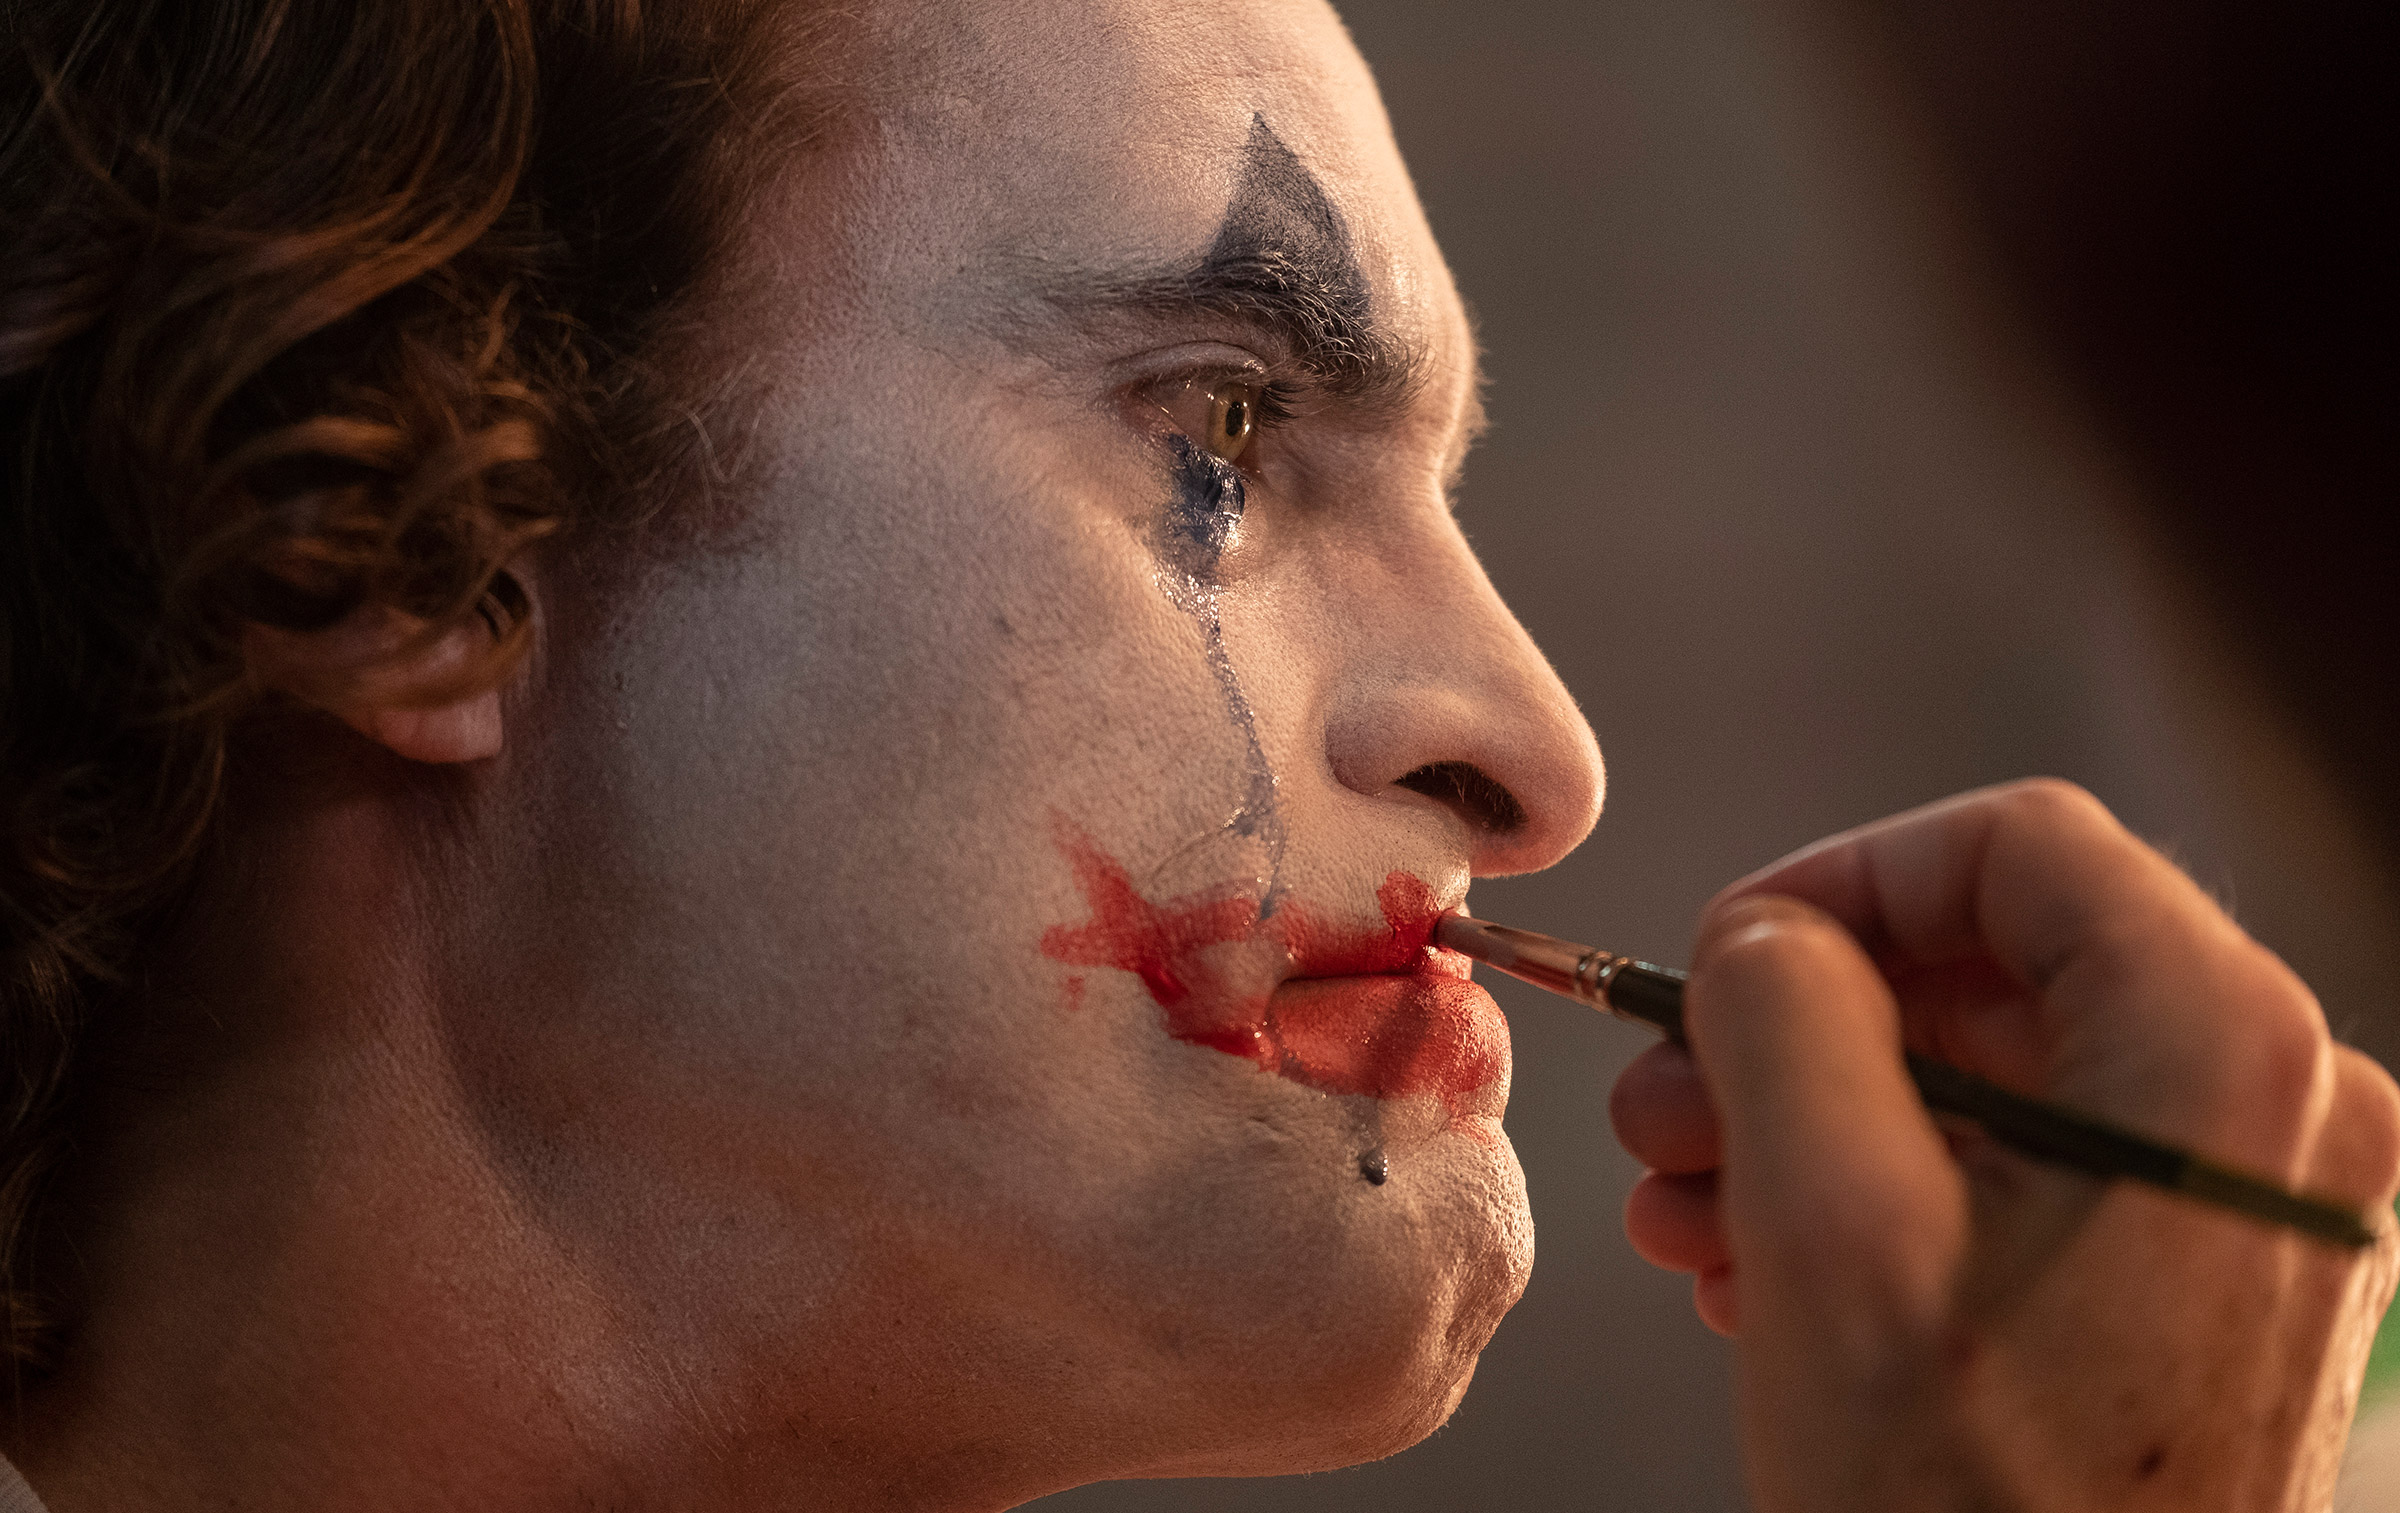 Joaquin Phoenix as Arthur Fleck in The Joker